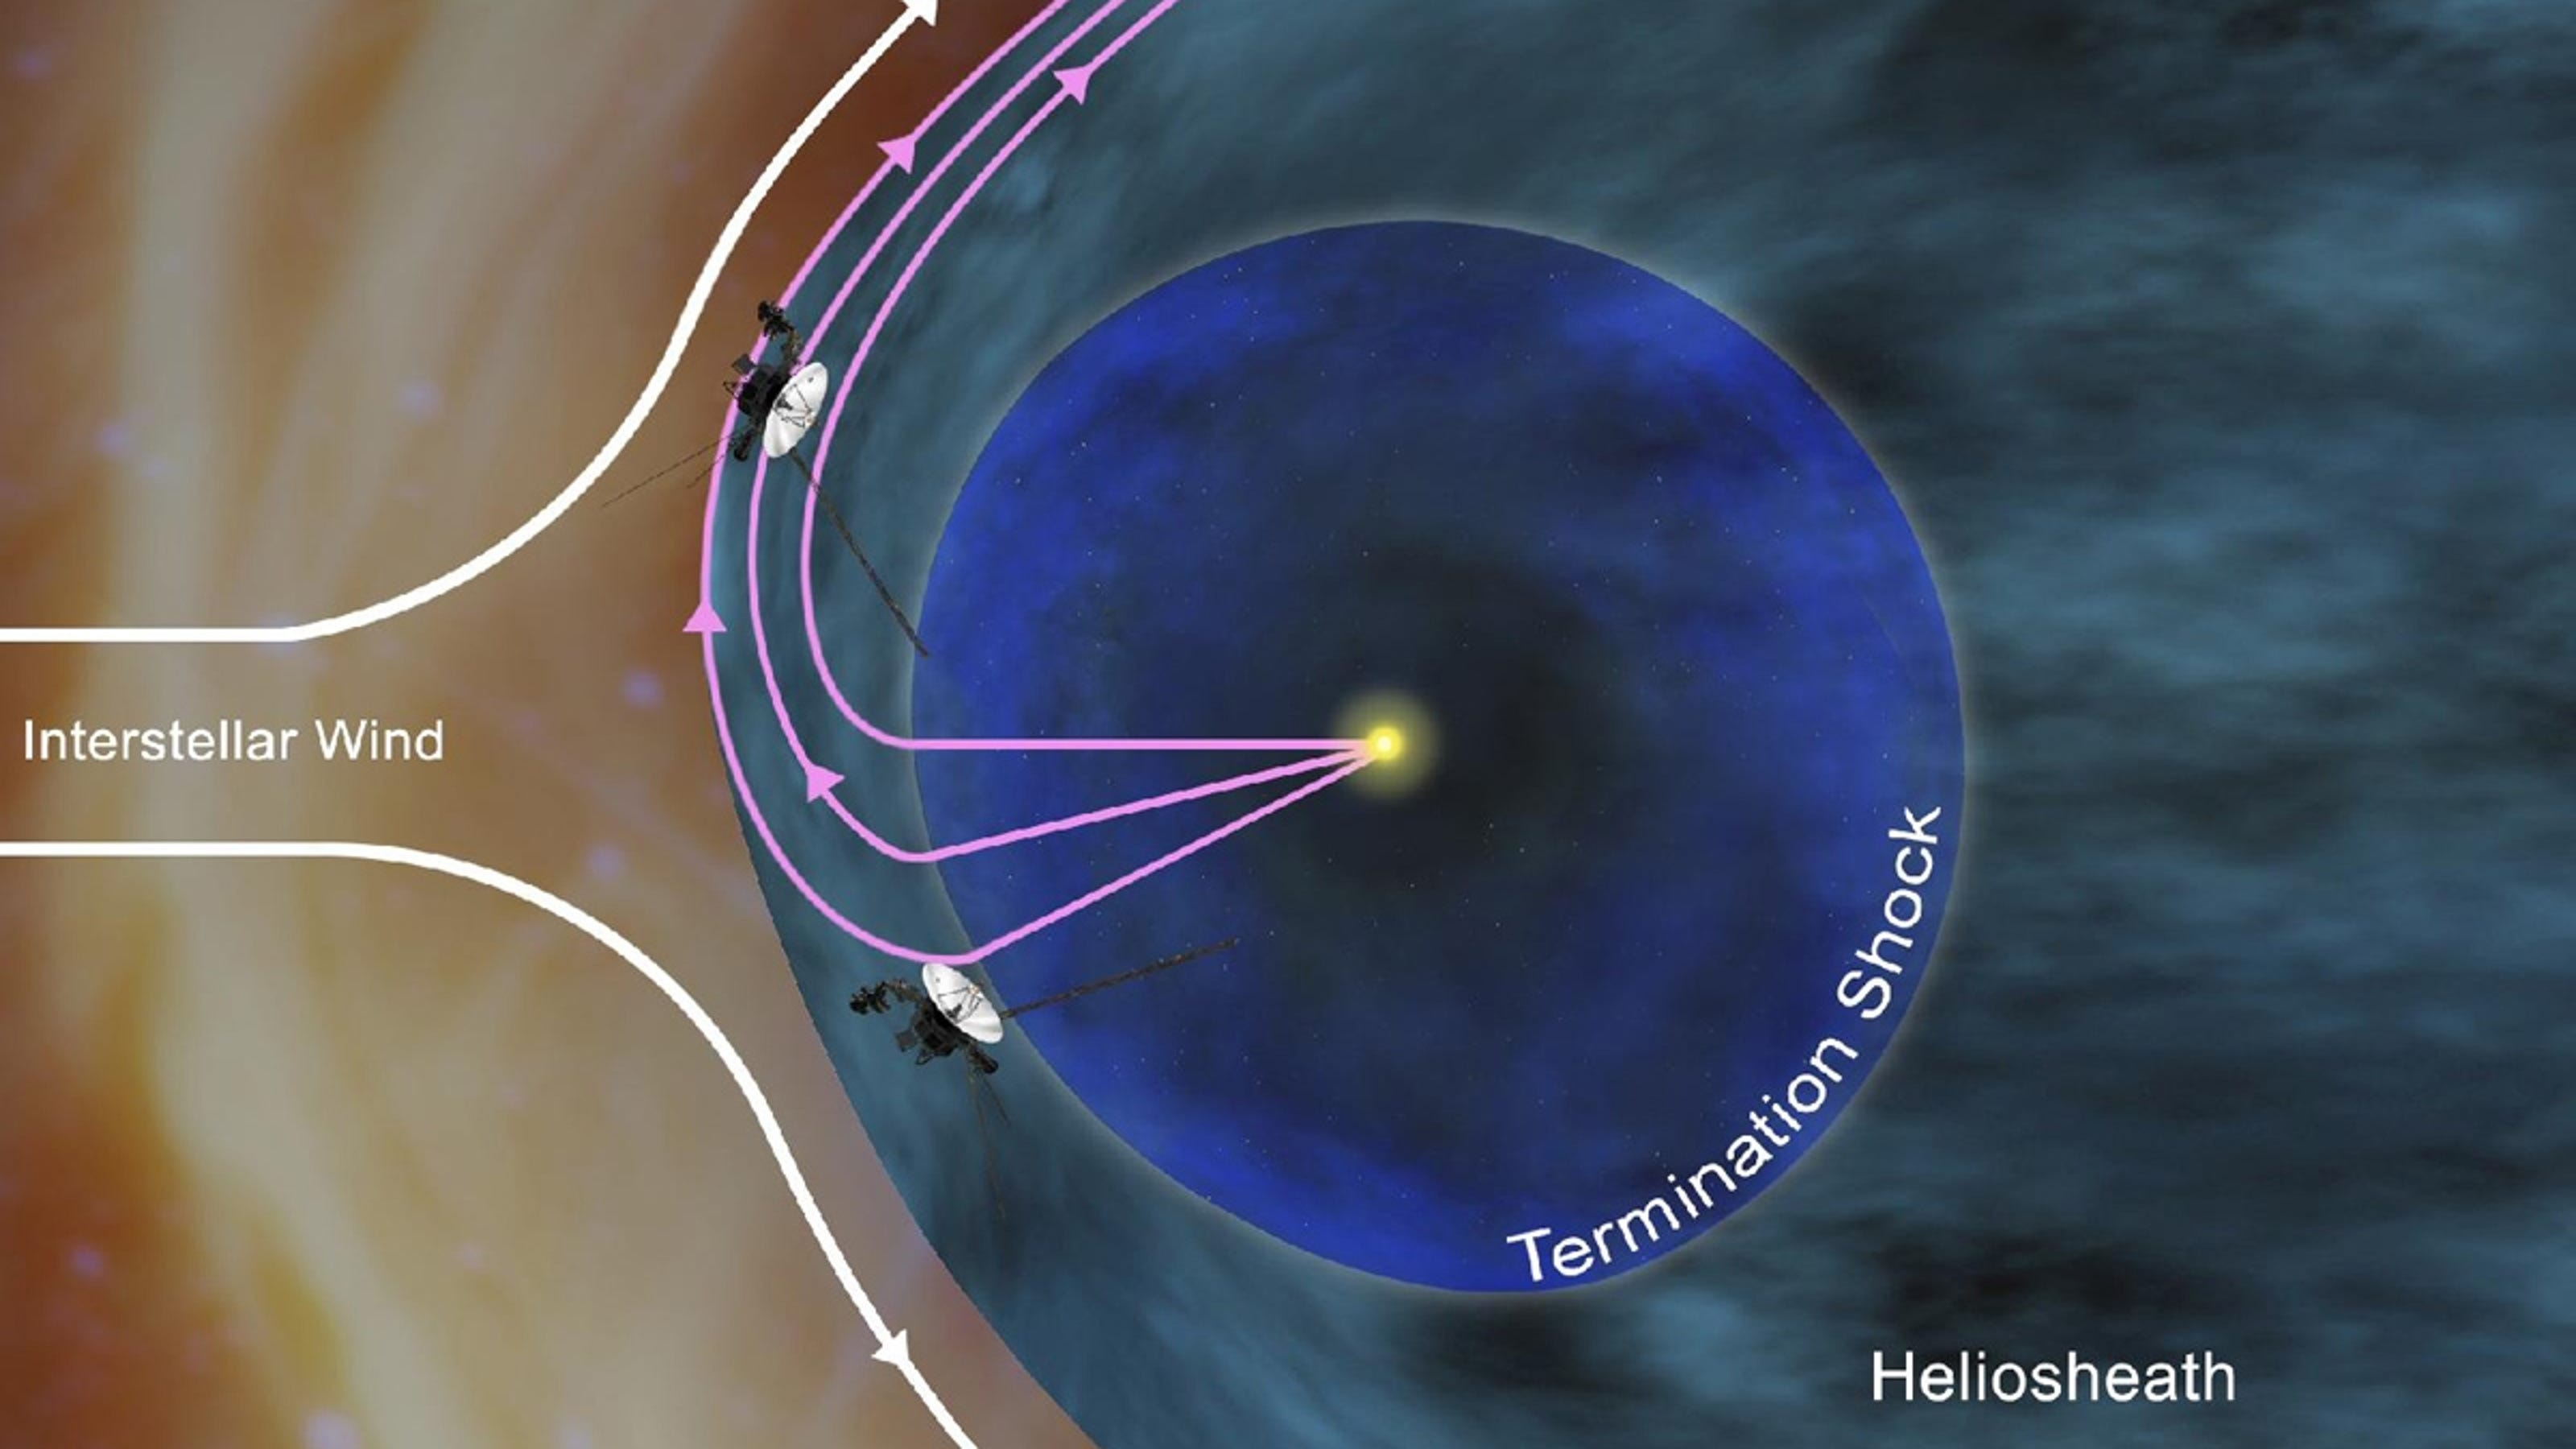 Voyager 1 finds unknown region at edge of solar system